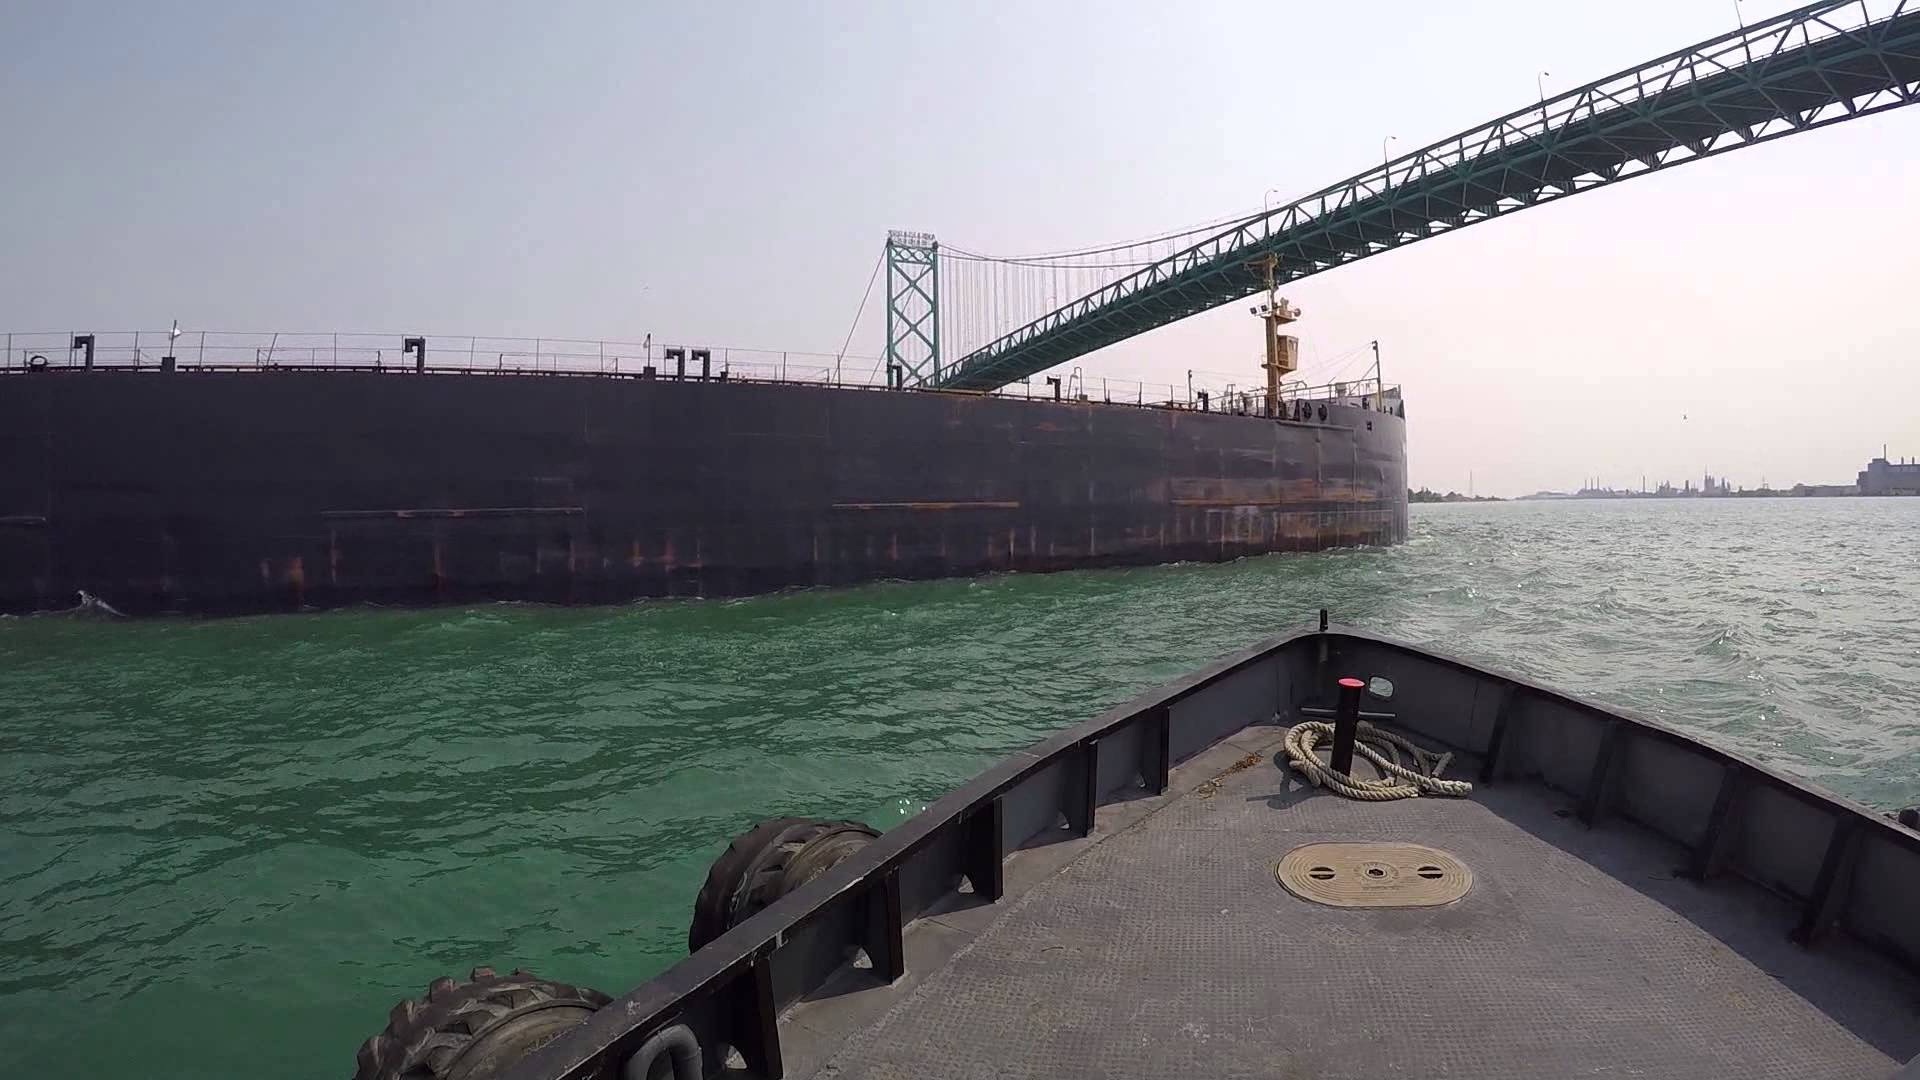 Photo by BoatNerd via youtube